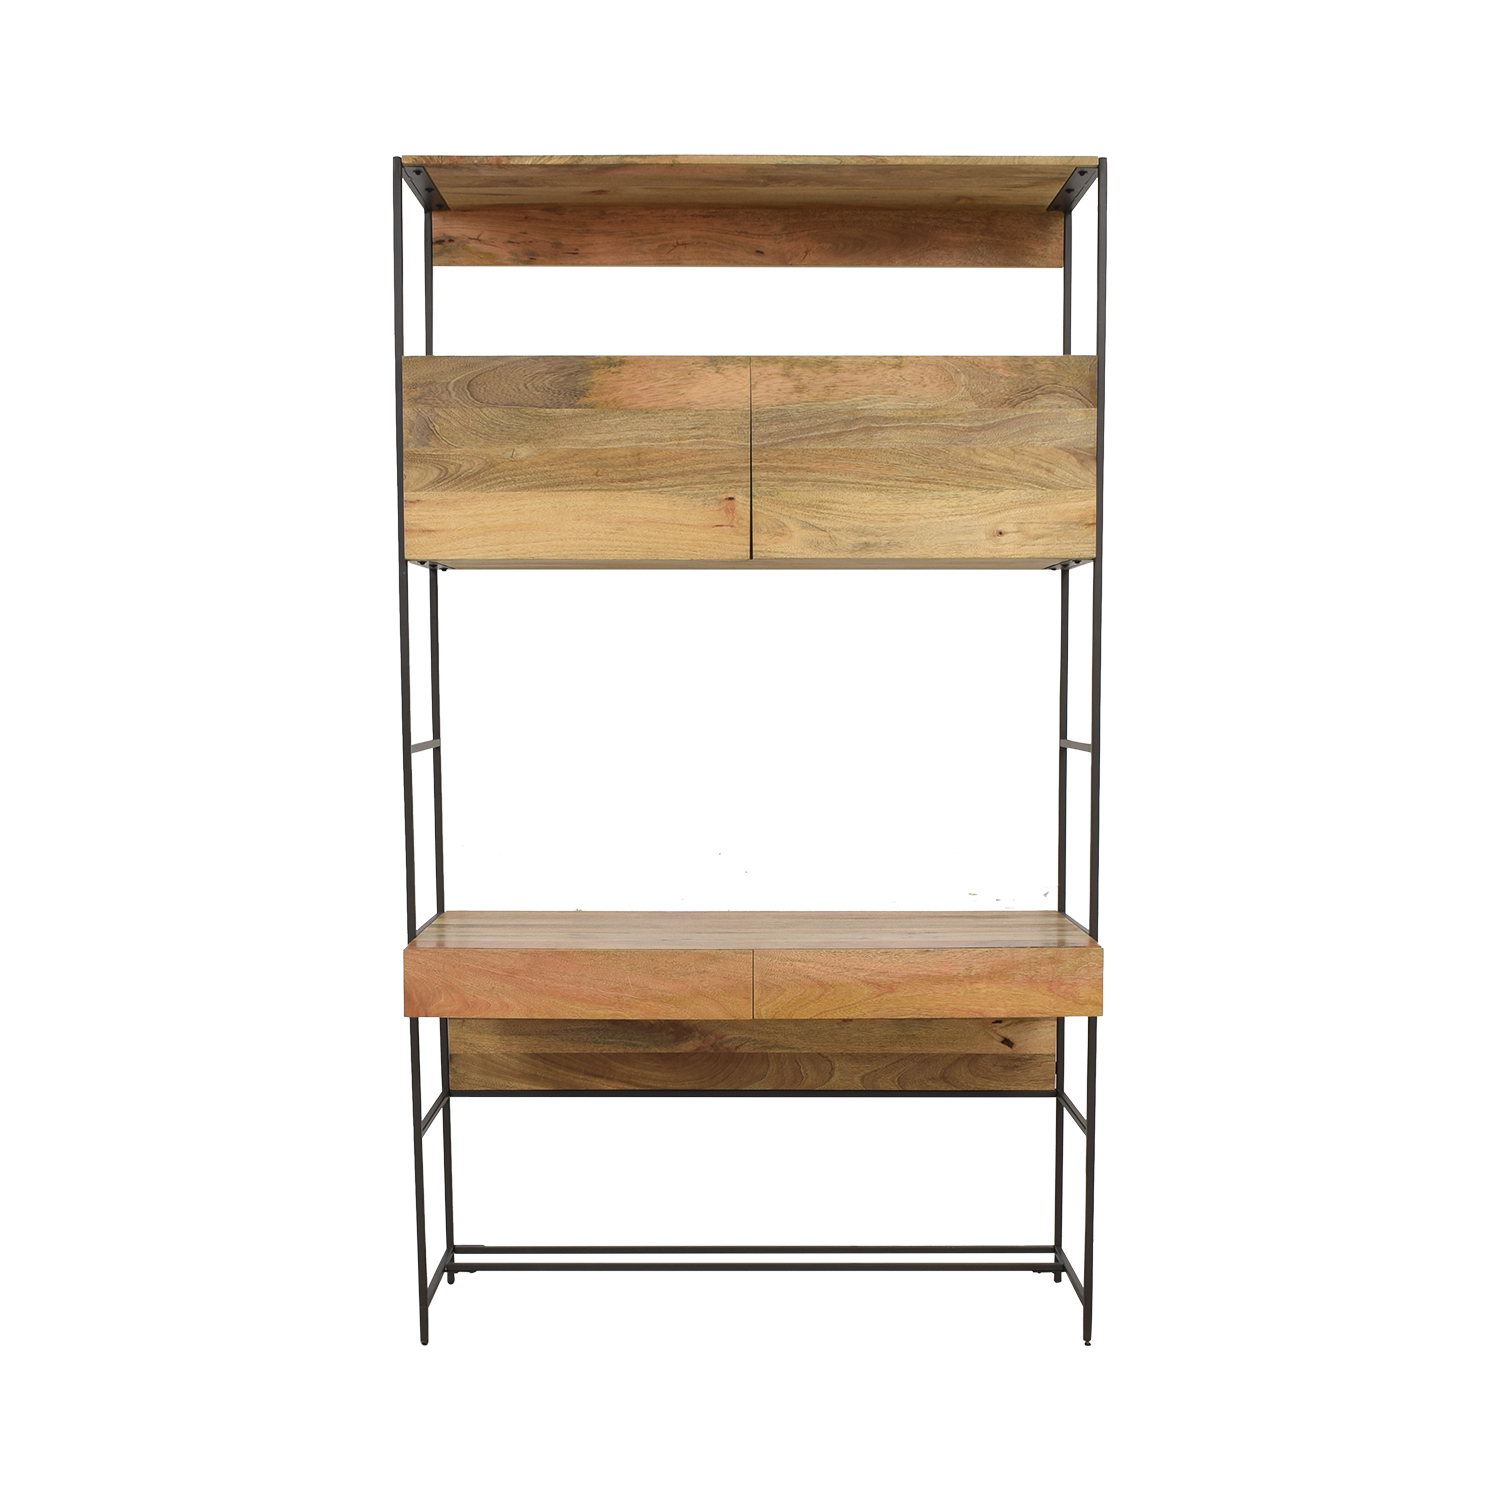 West Elm West Elm Industrial Modular Desk brown